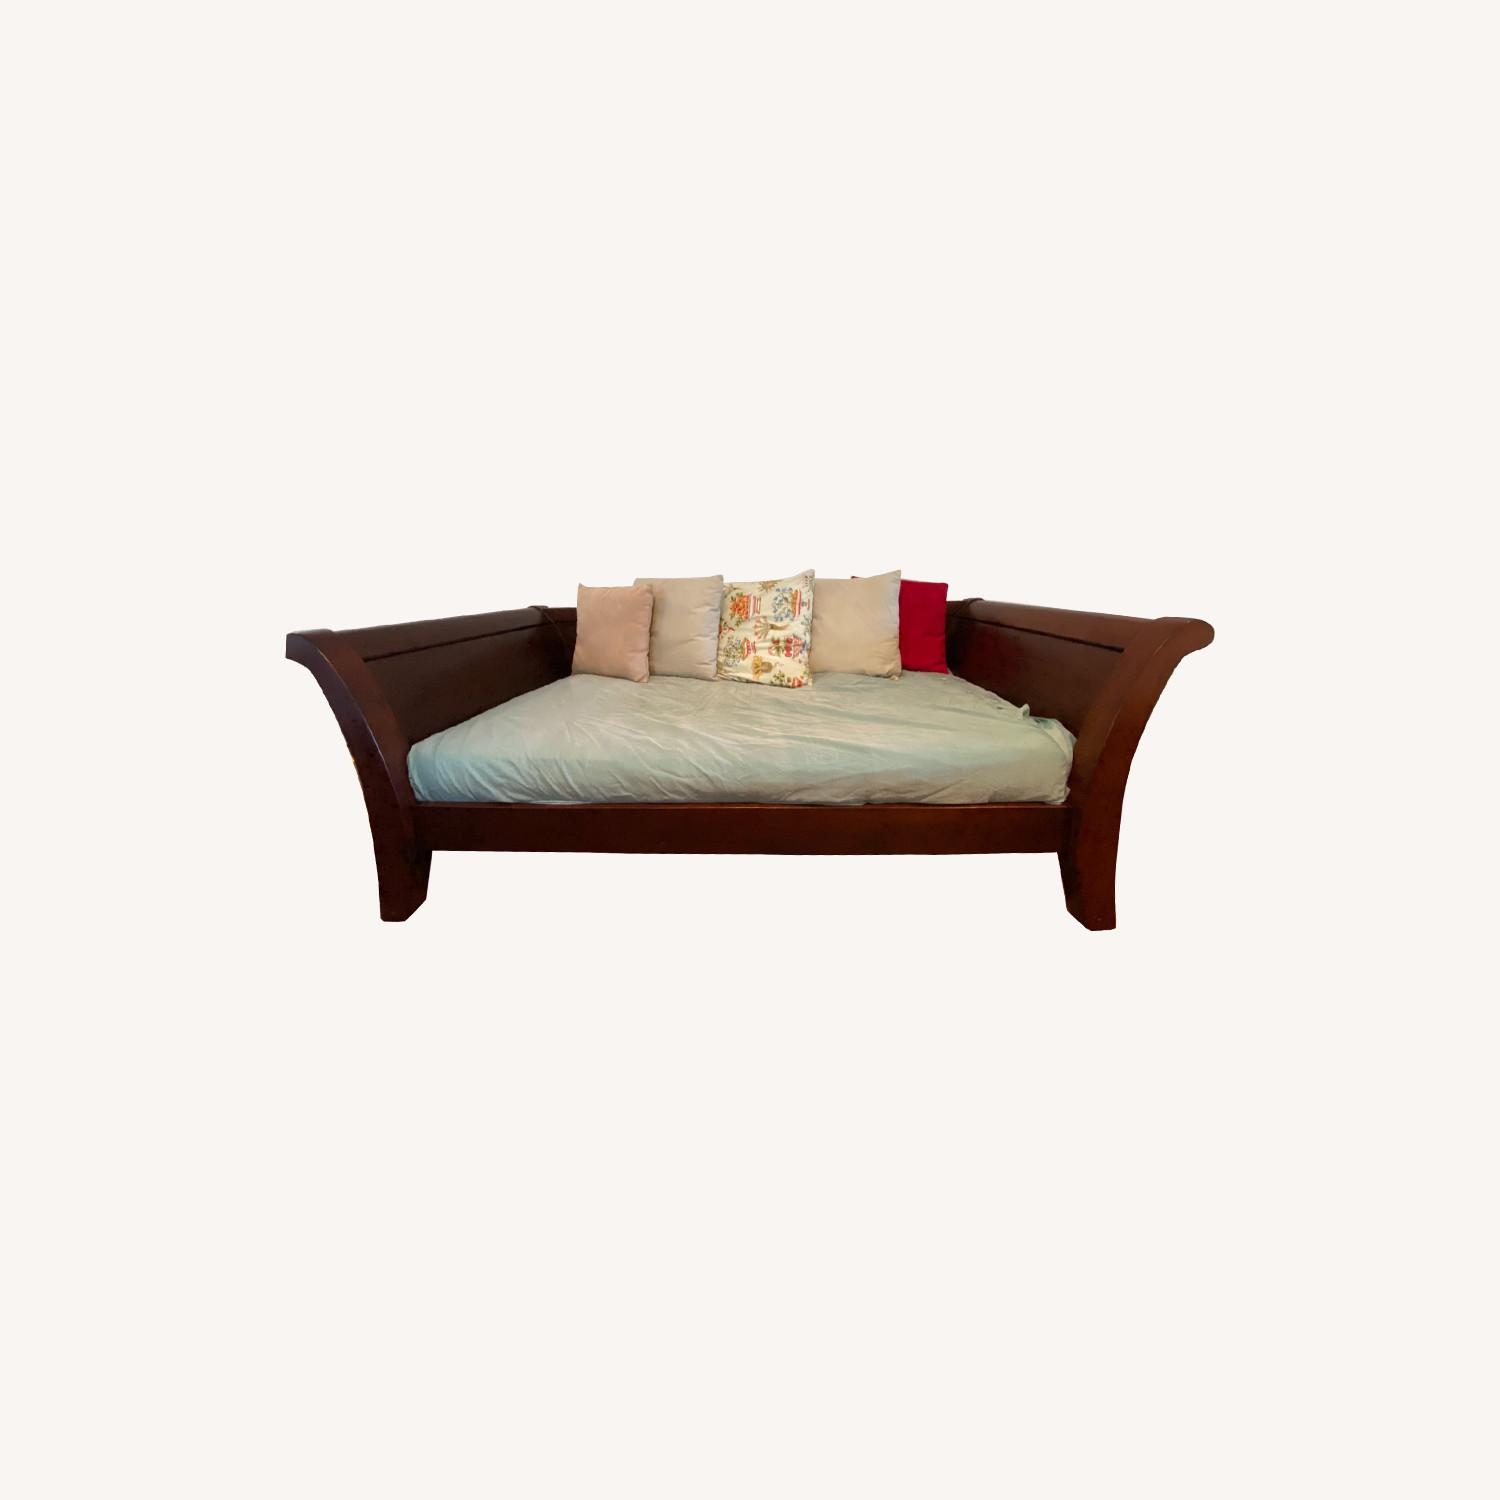 Impeccable Condition Sleigh Day bed - image-0